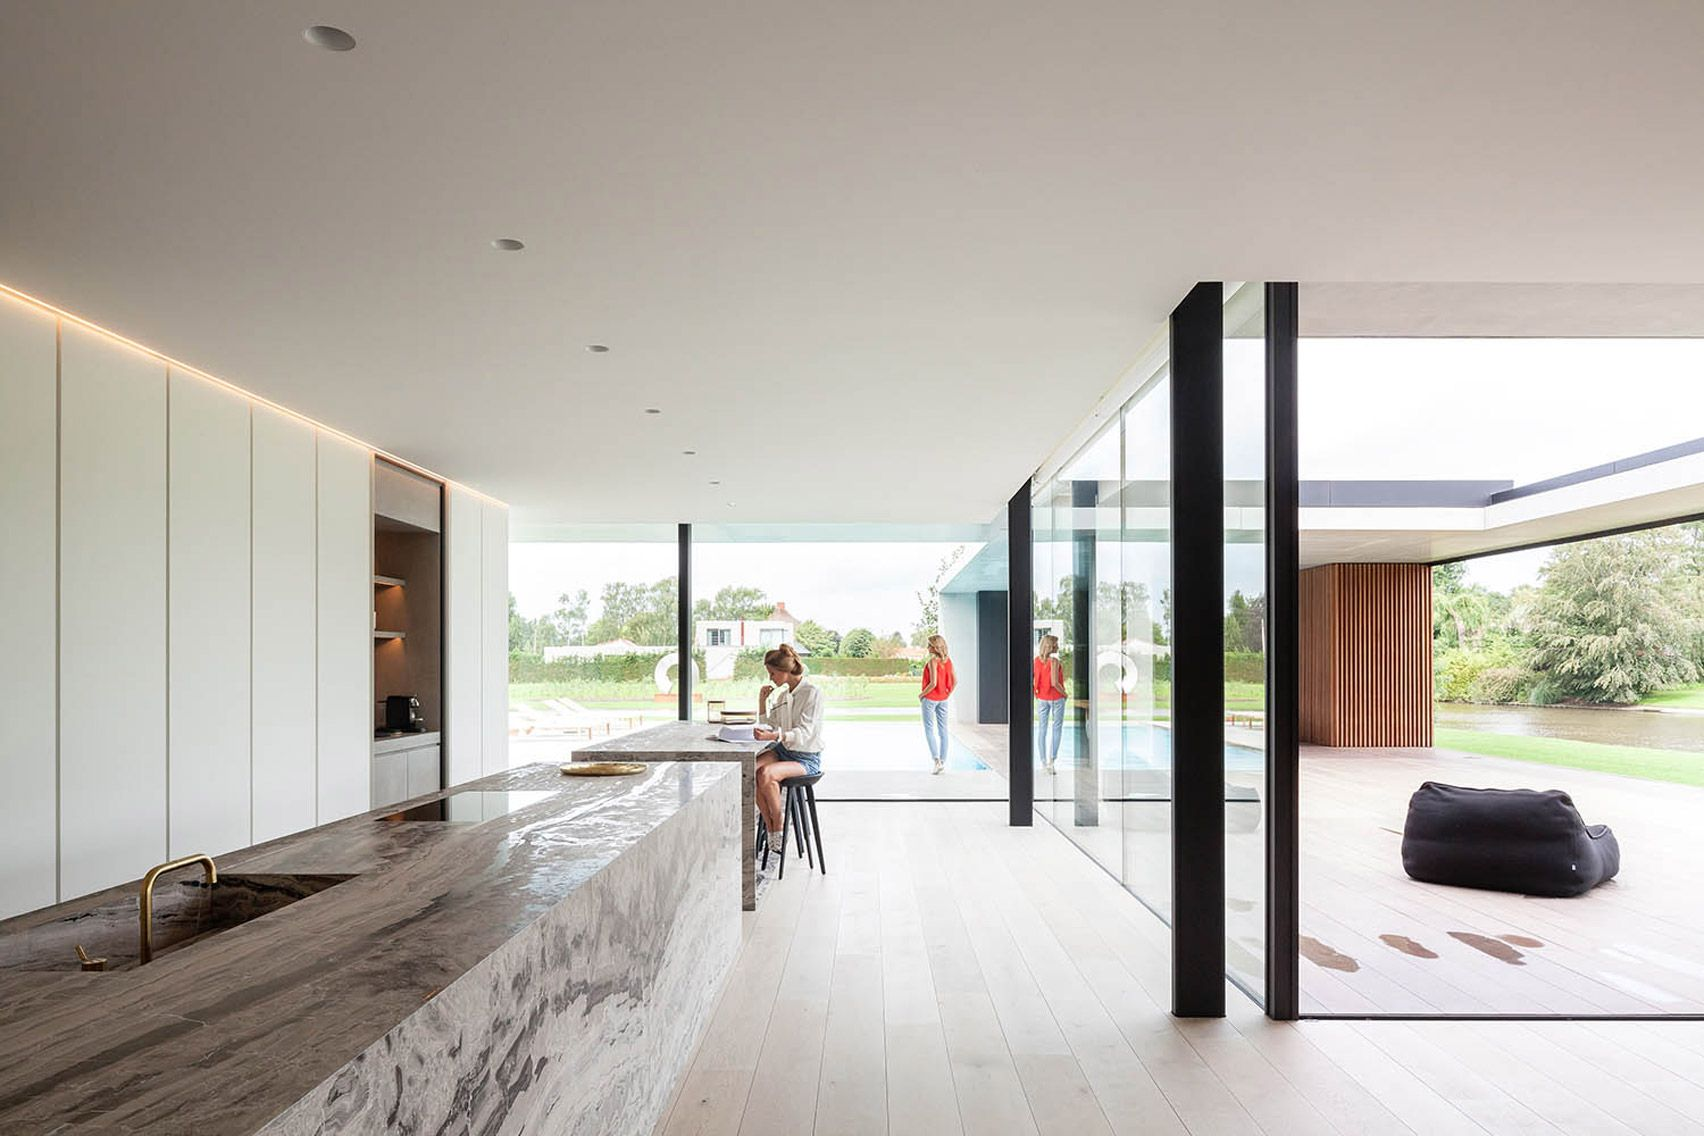 The bachelor pad govaert & vanhoutte architects droomhuizen